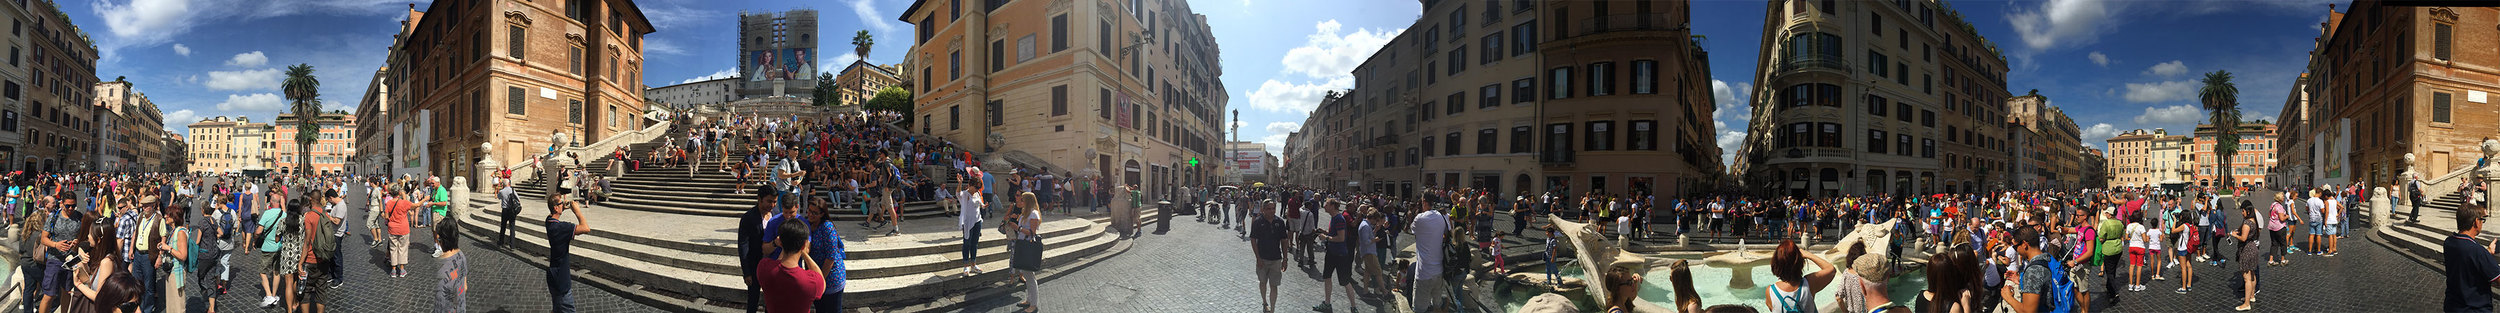 Panoramic photo of Piazza de Spagna at the foot of the Spanish Steps.